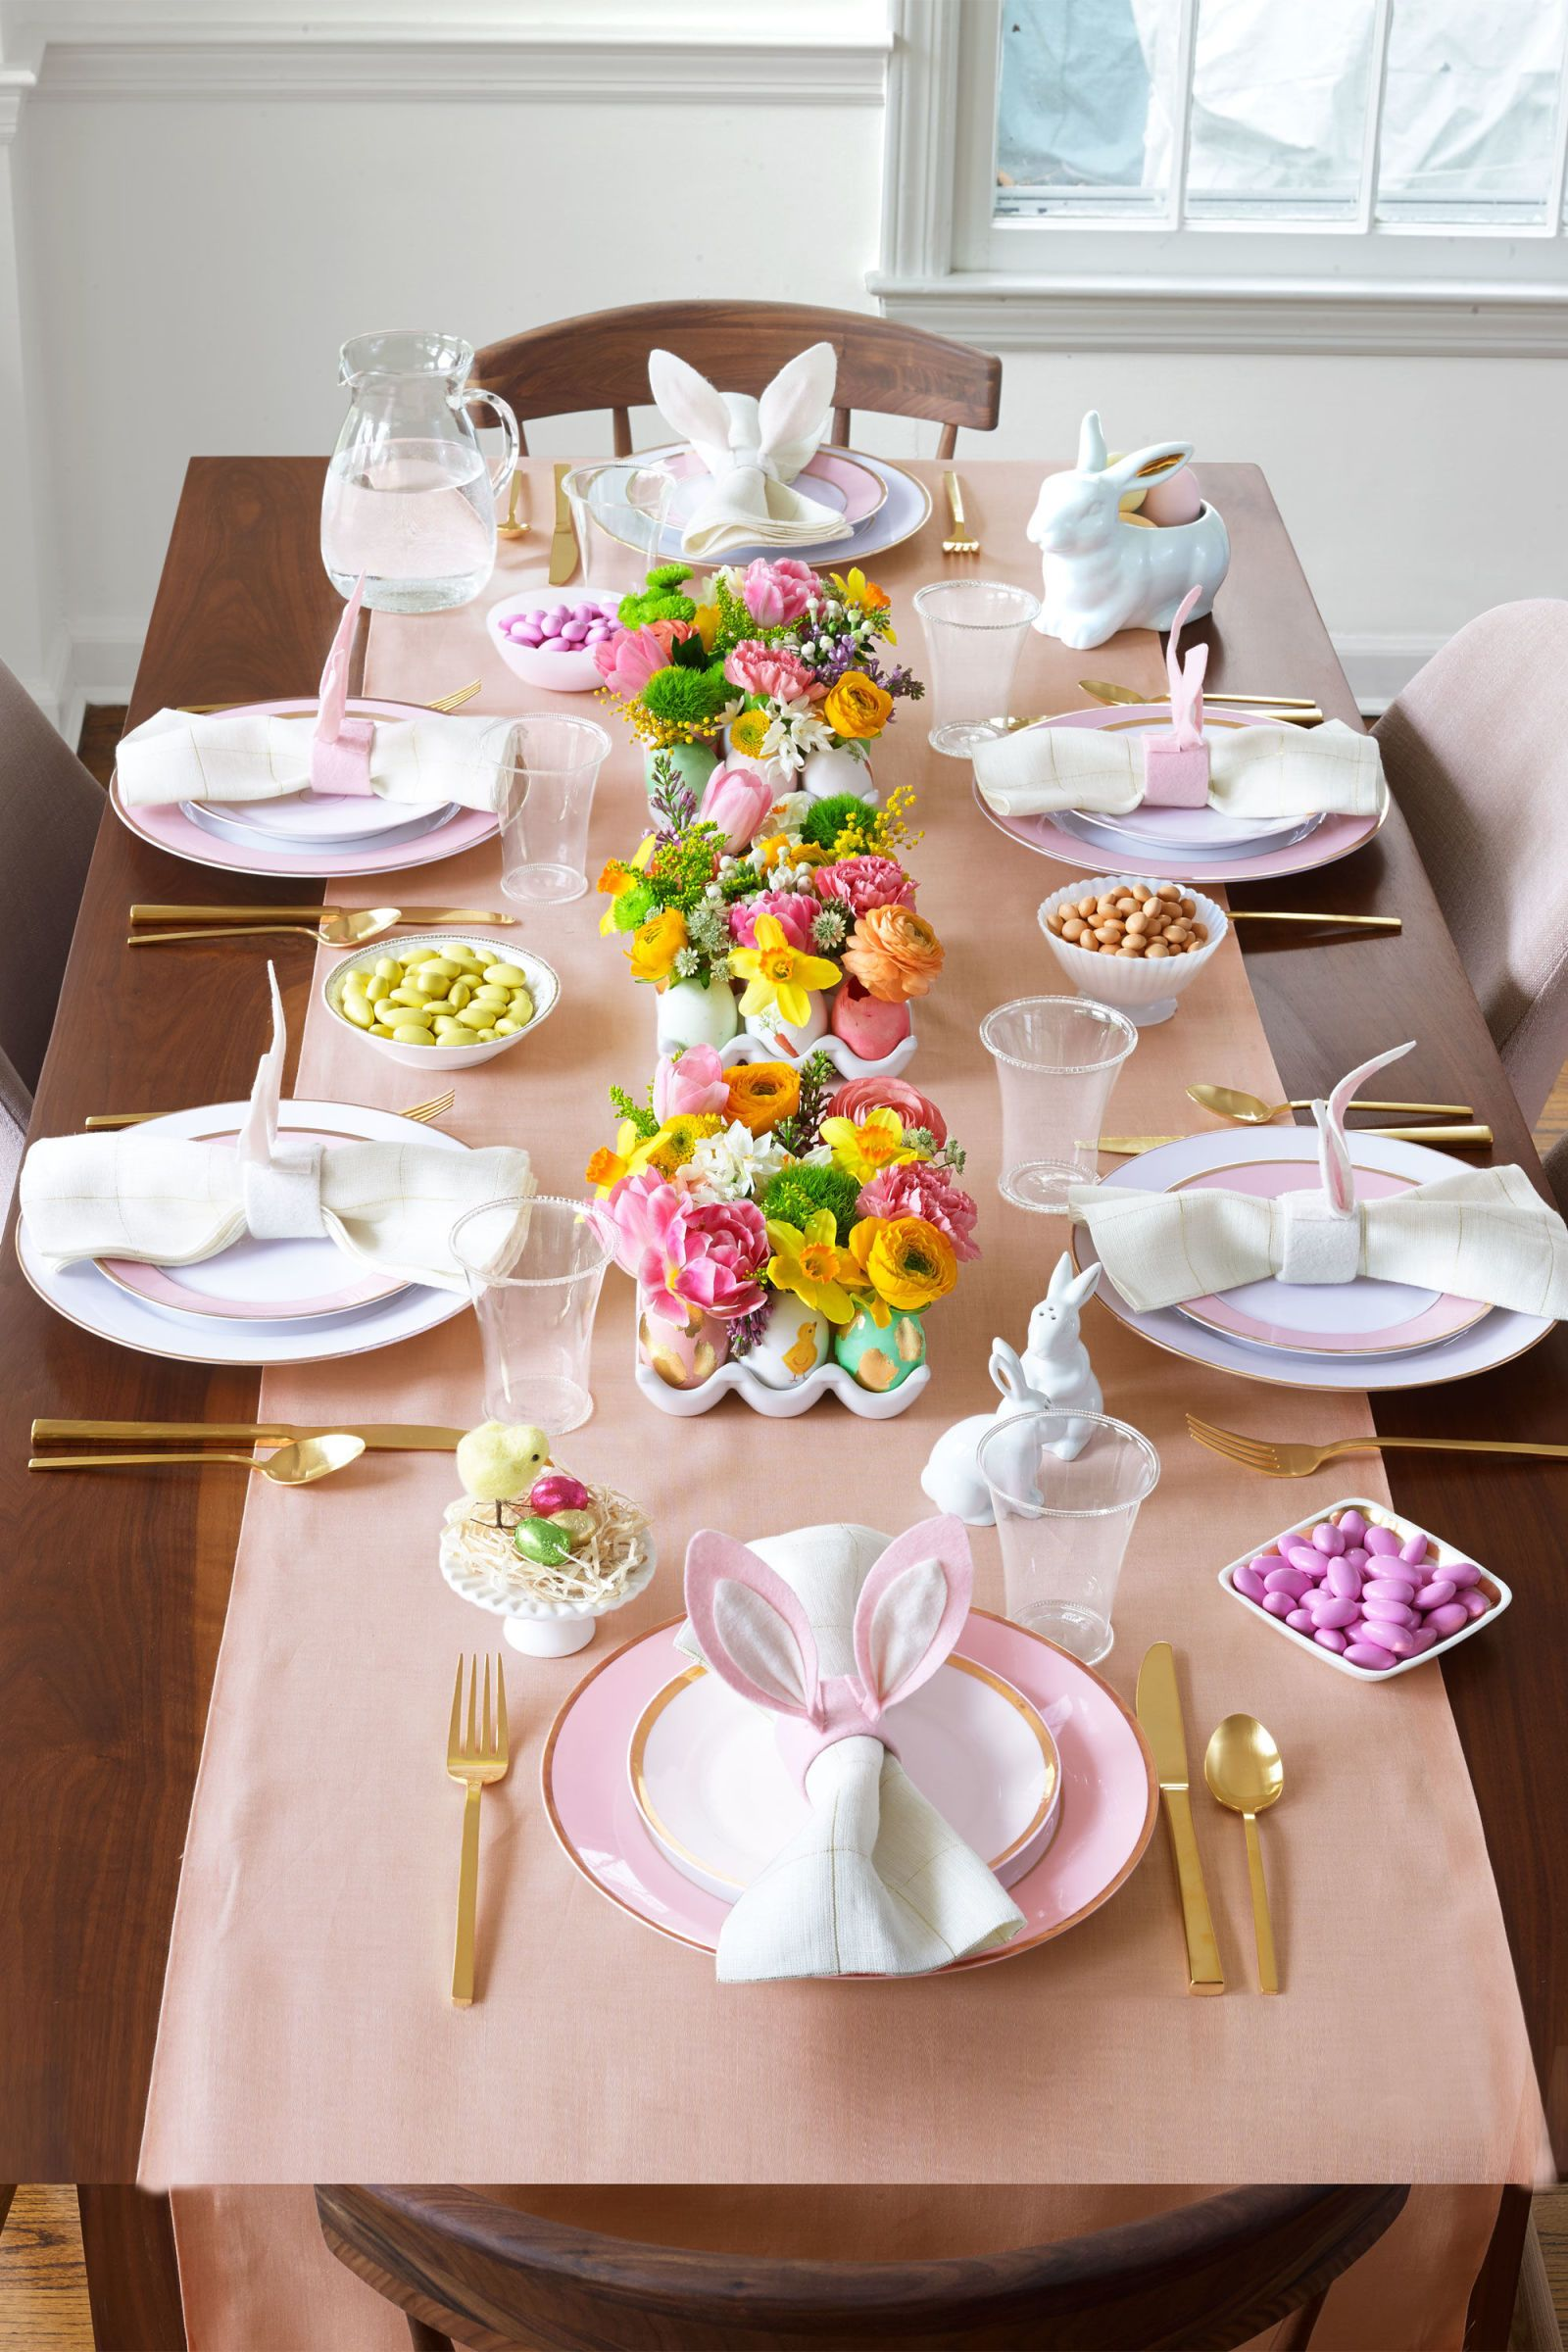 This Easter Brunch Decor Might Even Be More Impressive